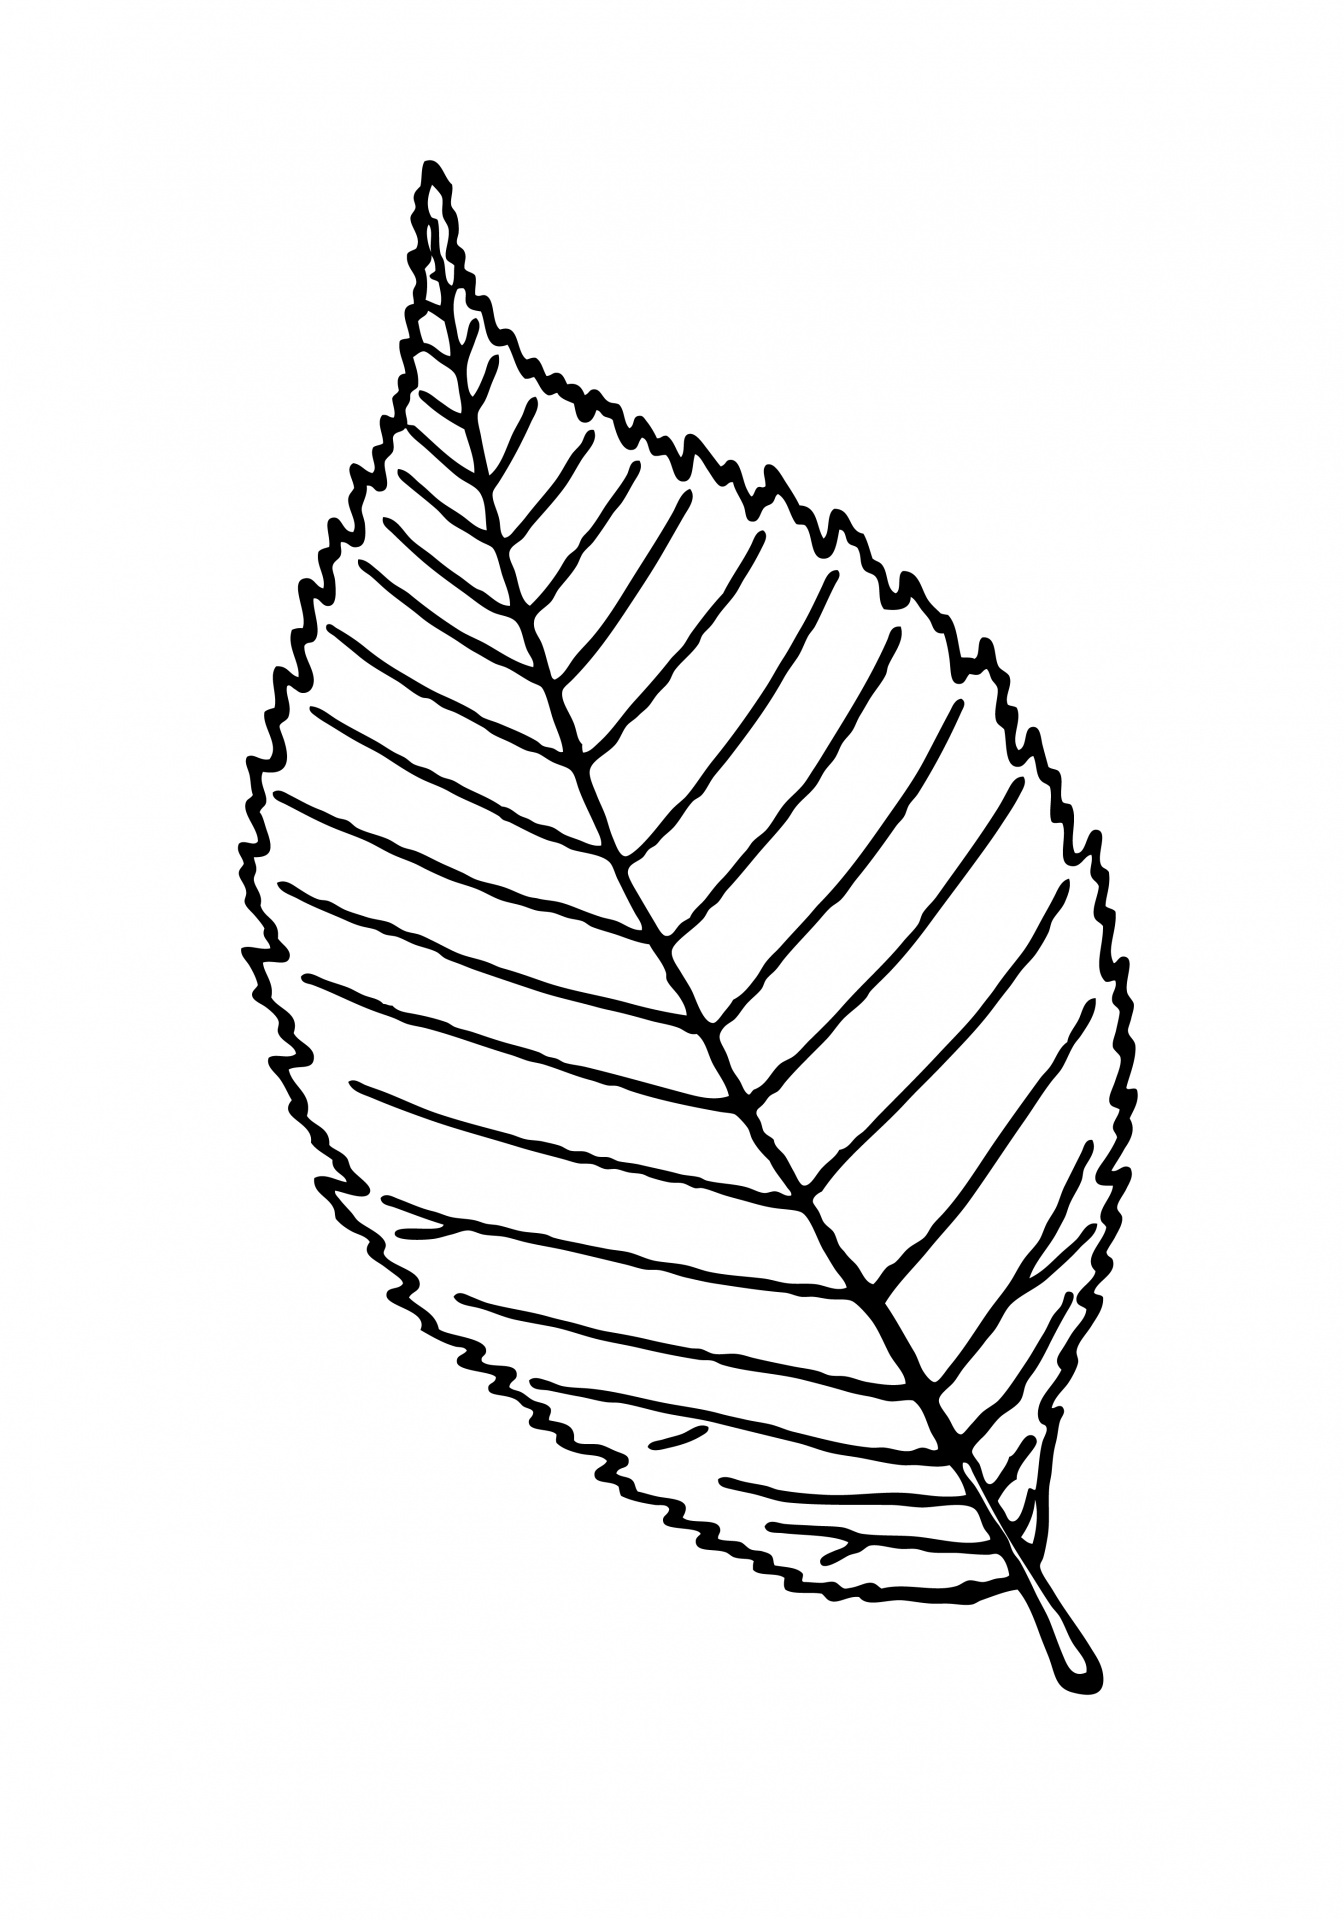 Leaf Outline Leaf Clipart Black And White Gclipart